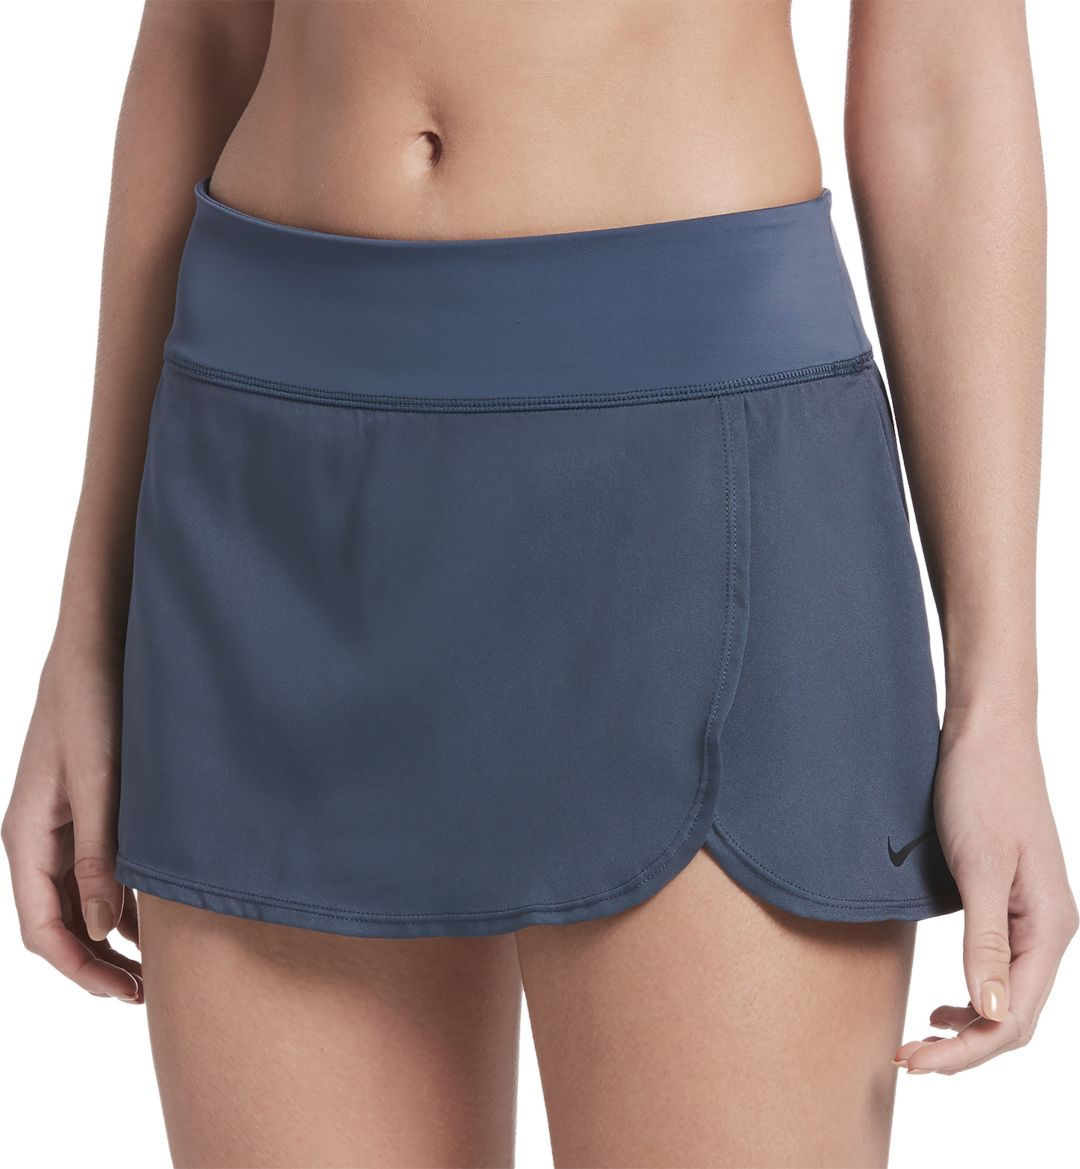 68bed9d63a Nike Women's Solid Element Swim Skirt. noImageFound. Previous